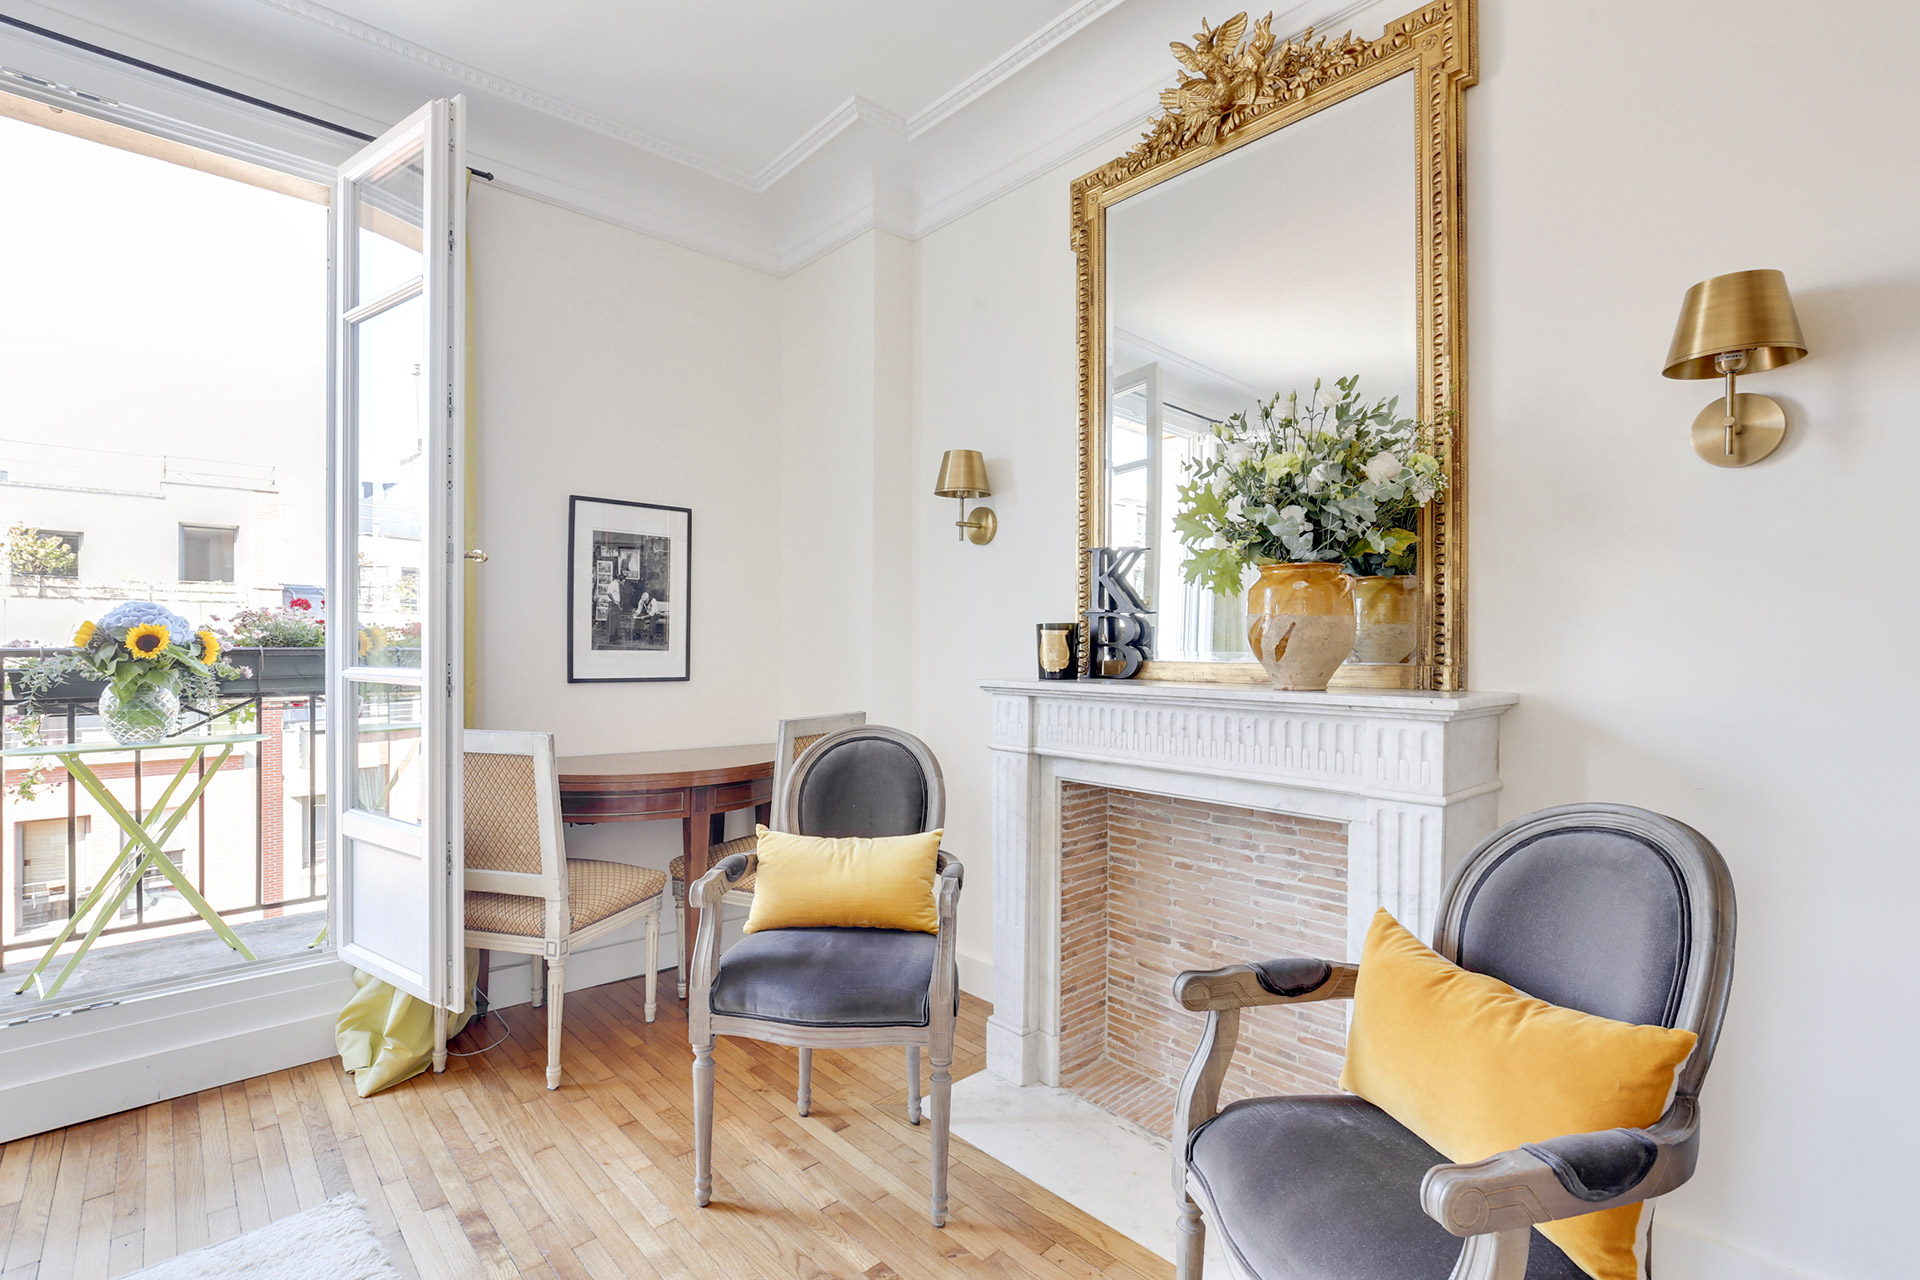 Enjoy time with family and friends in front of this beautiful fireplace in the Vivarais apartment rental by Paris Perfect